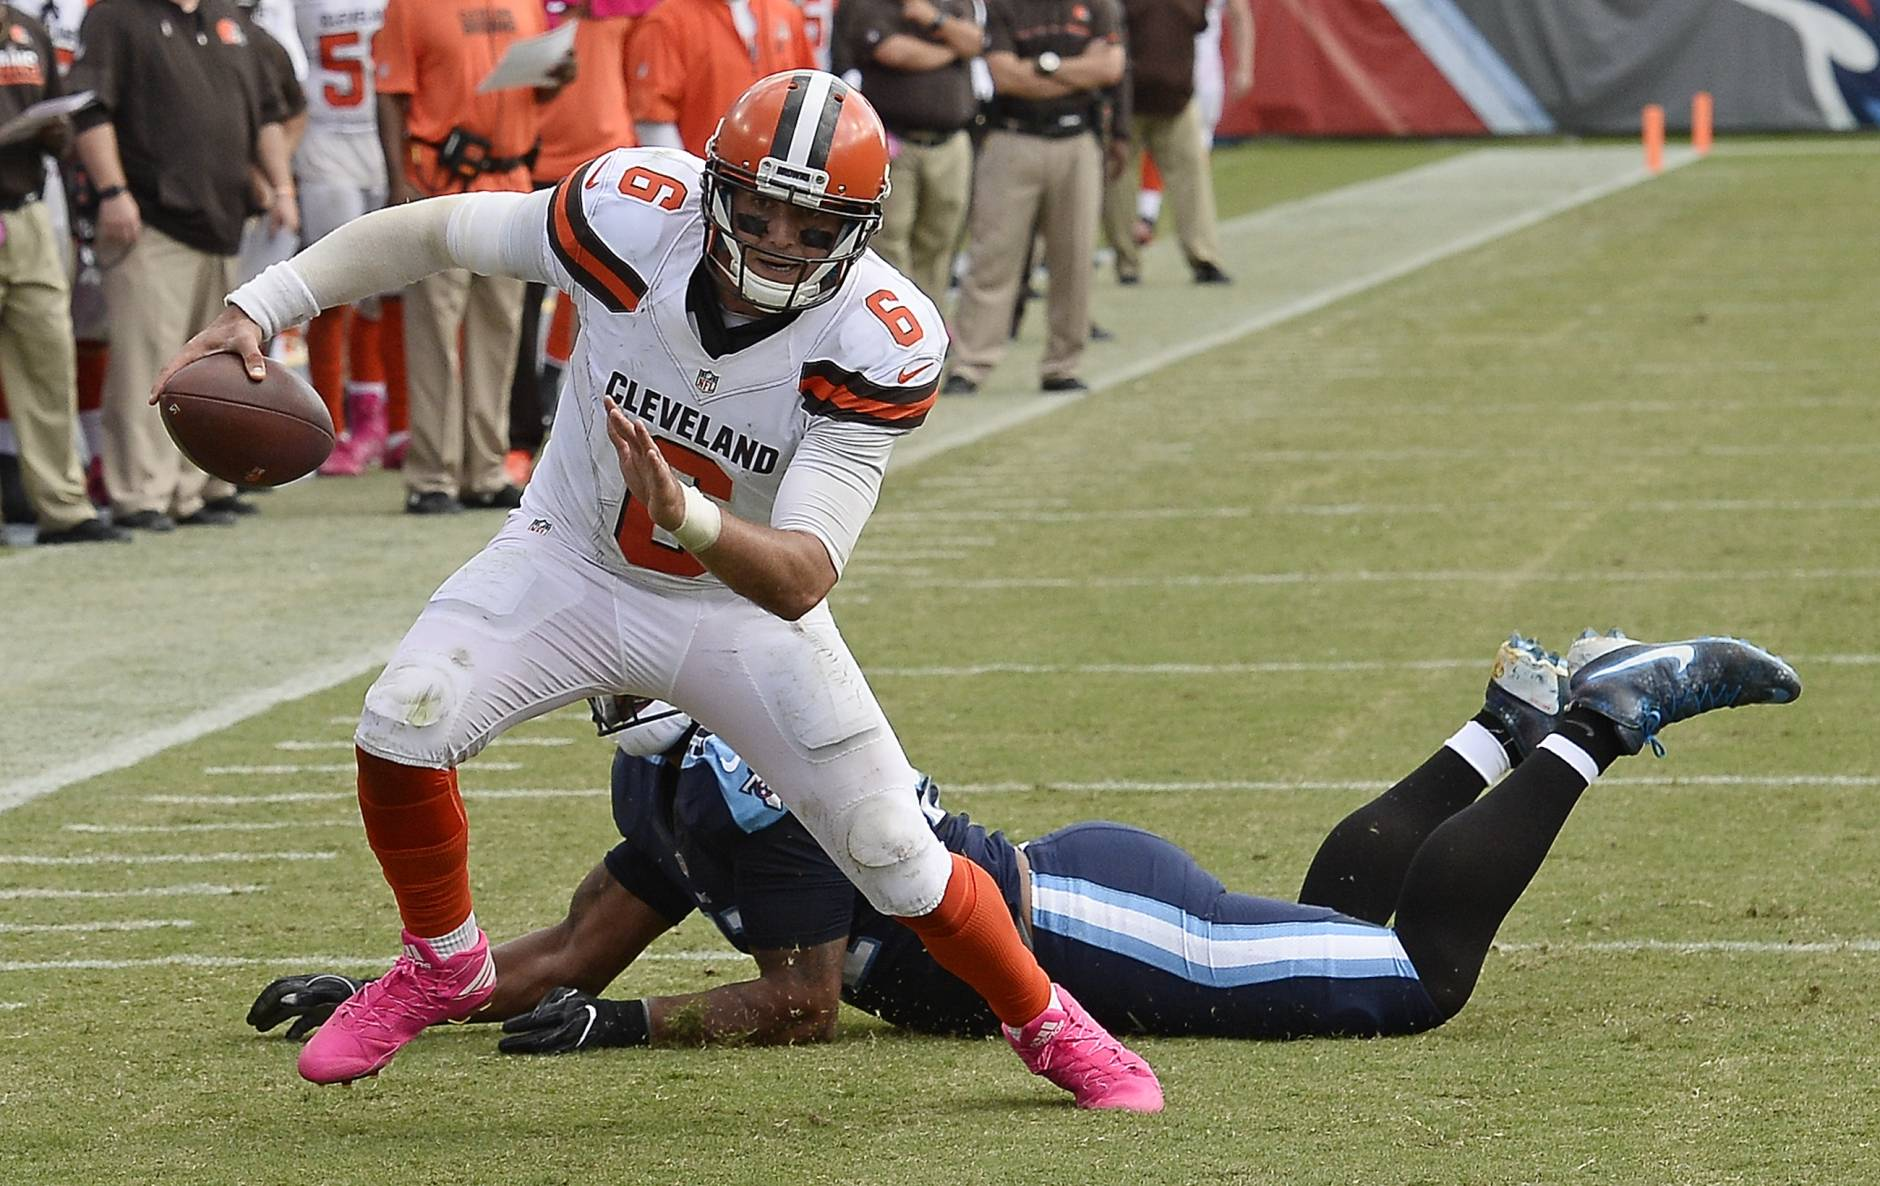 ... USA Cleveland Browns quarterback Cody Kessler Cody Kessler throws for  336 yards in Browns latest loss WTO Nov 6 ... 6f2dfc8bd